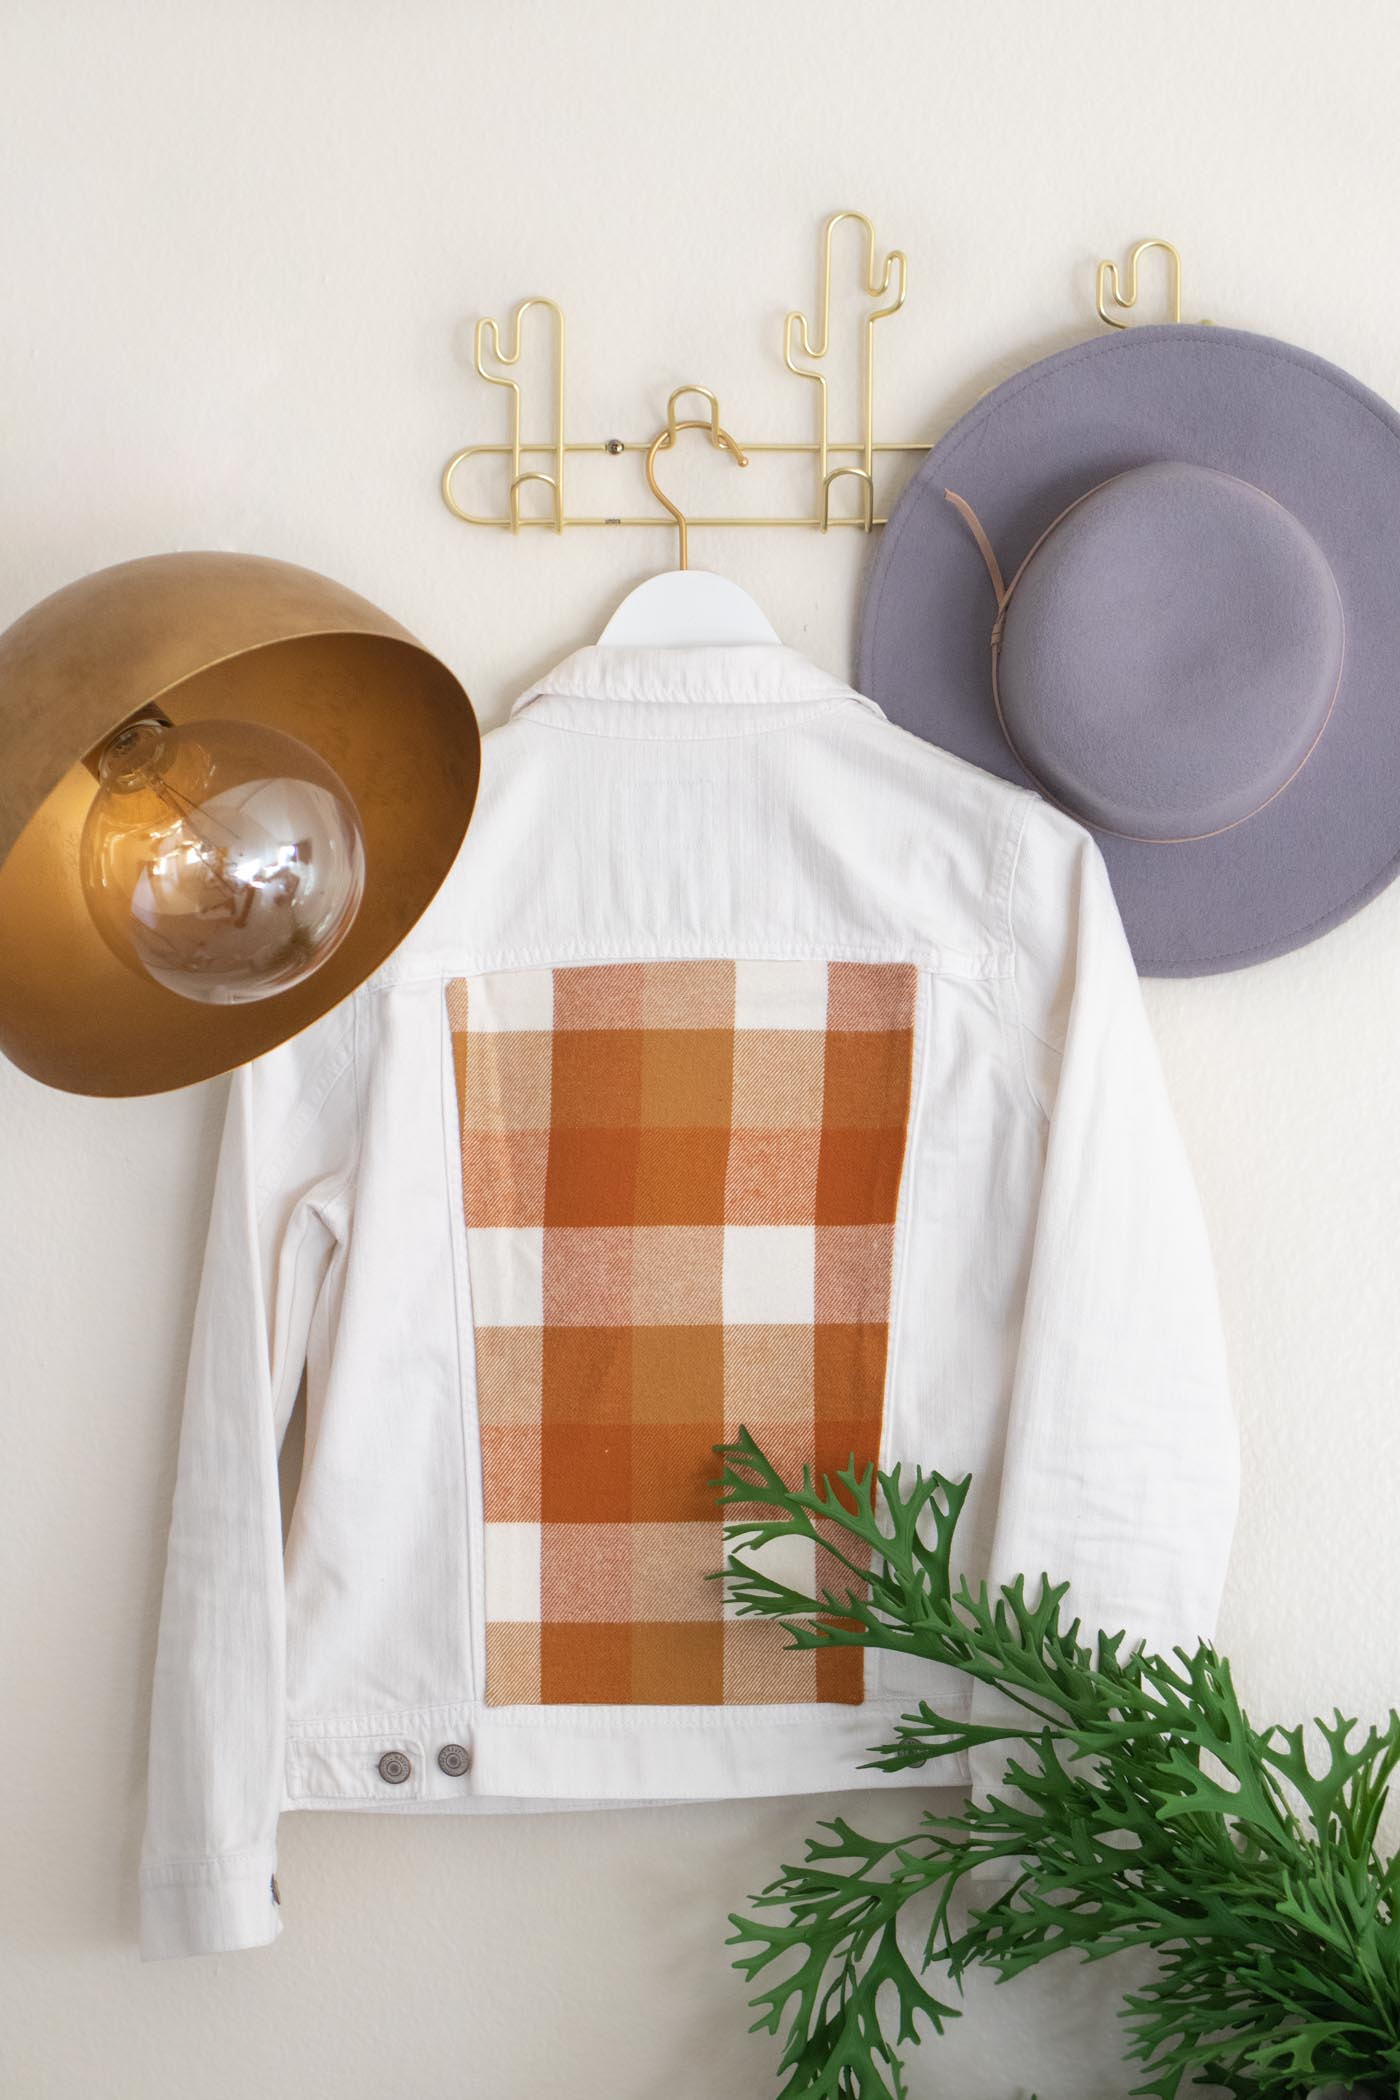 DIY No-Sew Plaid Jacket Insert // Update a denim jacket with varieties of plaid flannel on the back from @joann! This no-sew jacket idea is perfect for fall fashion! #joannpartner #handmadewithjoann #nosew #fallfashion #womensfashion #fabriccrafts